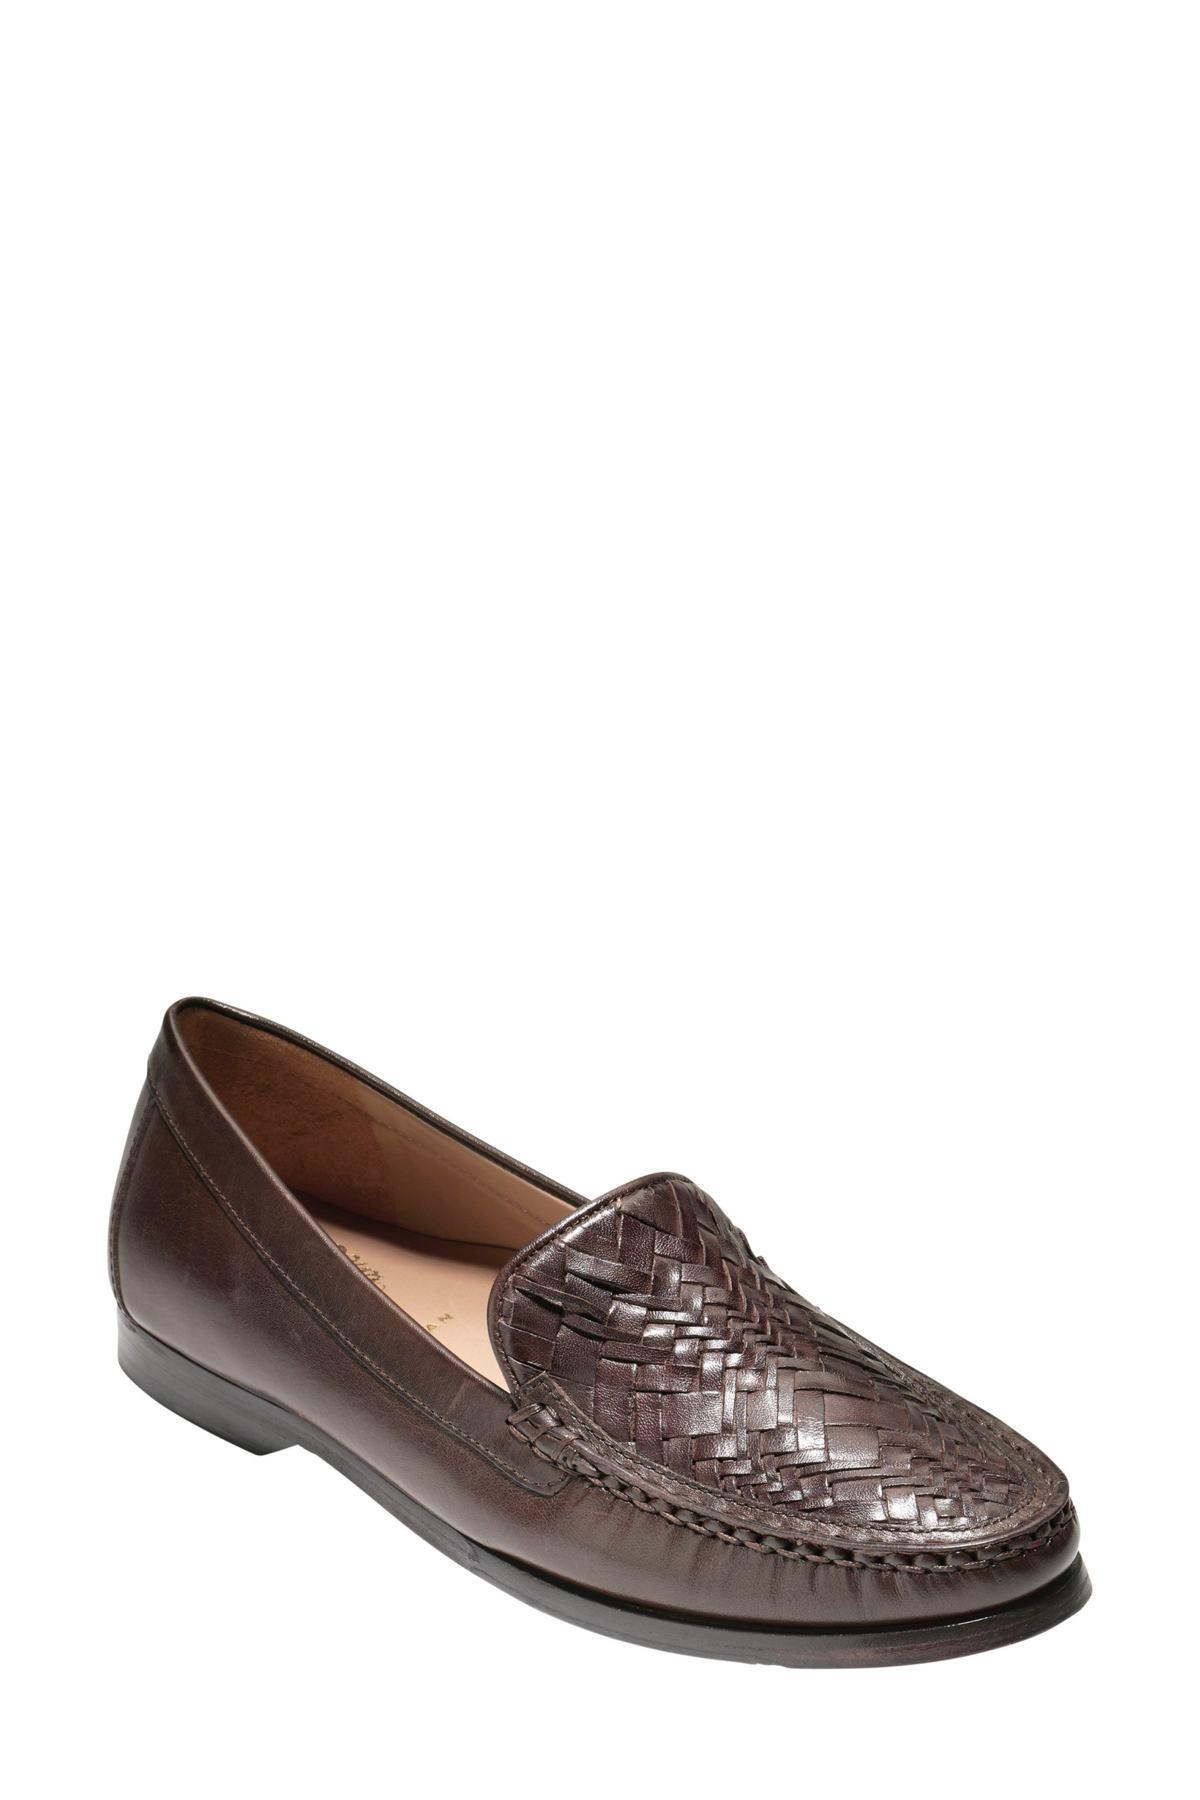 c665651f220 Lyst - Cole Haan Pinch Genevieve Woven Loafer in Brown